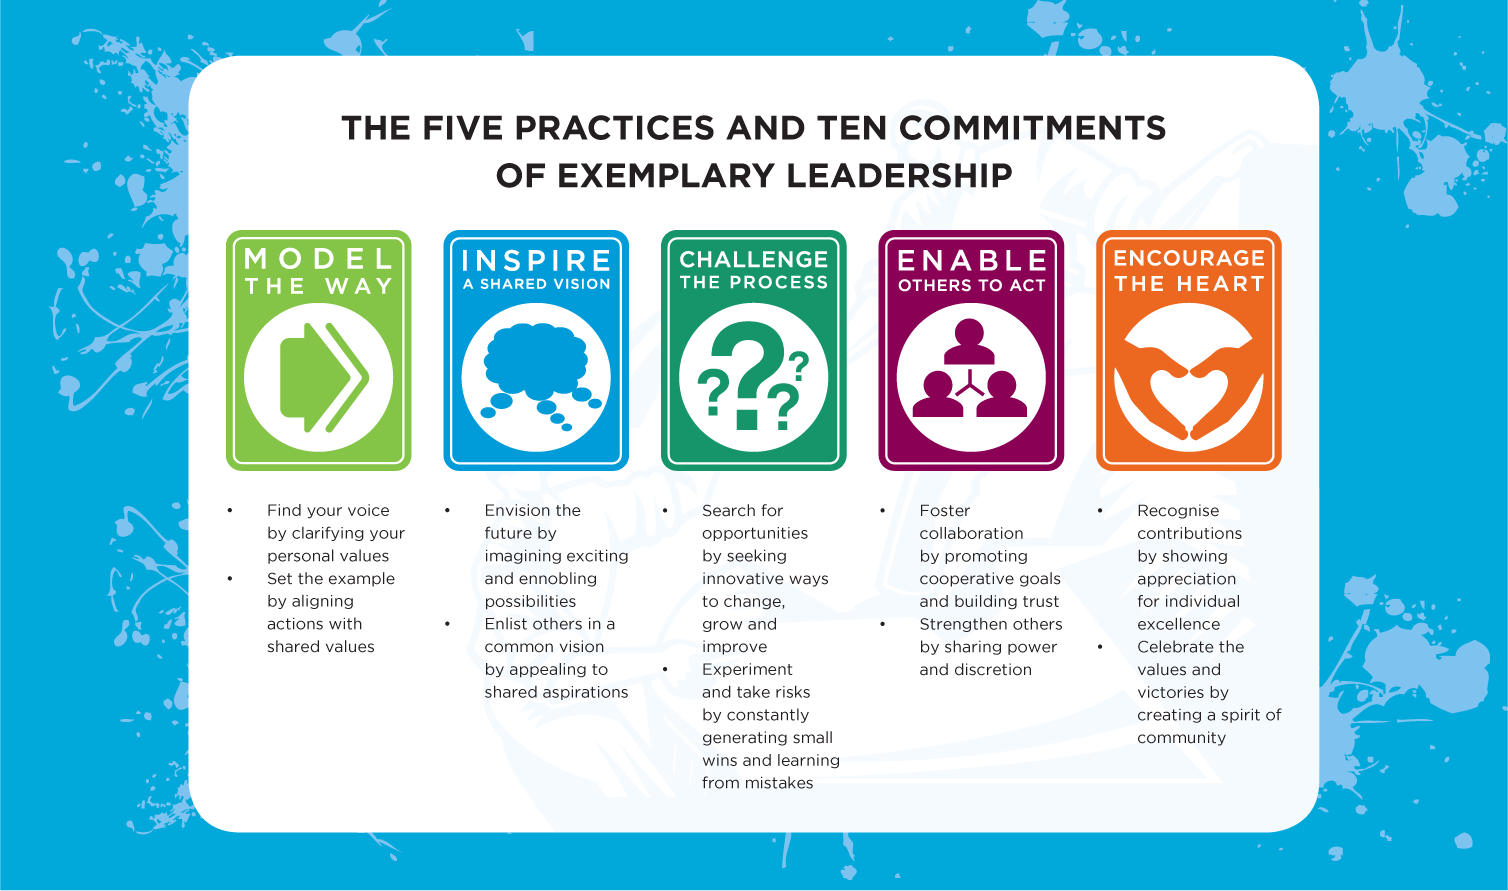 The Five Practices And Ten Commitments Of Exemplary